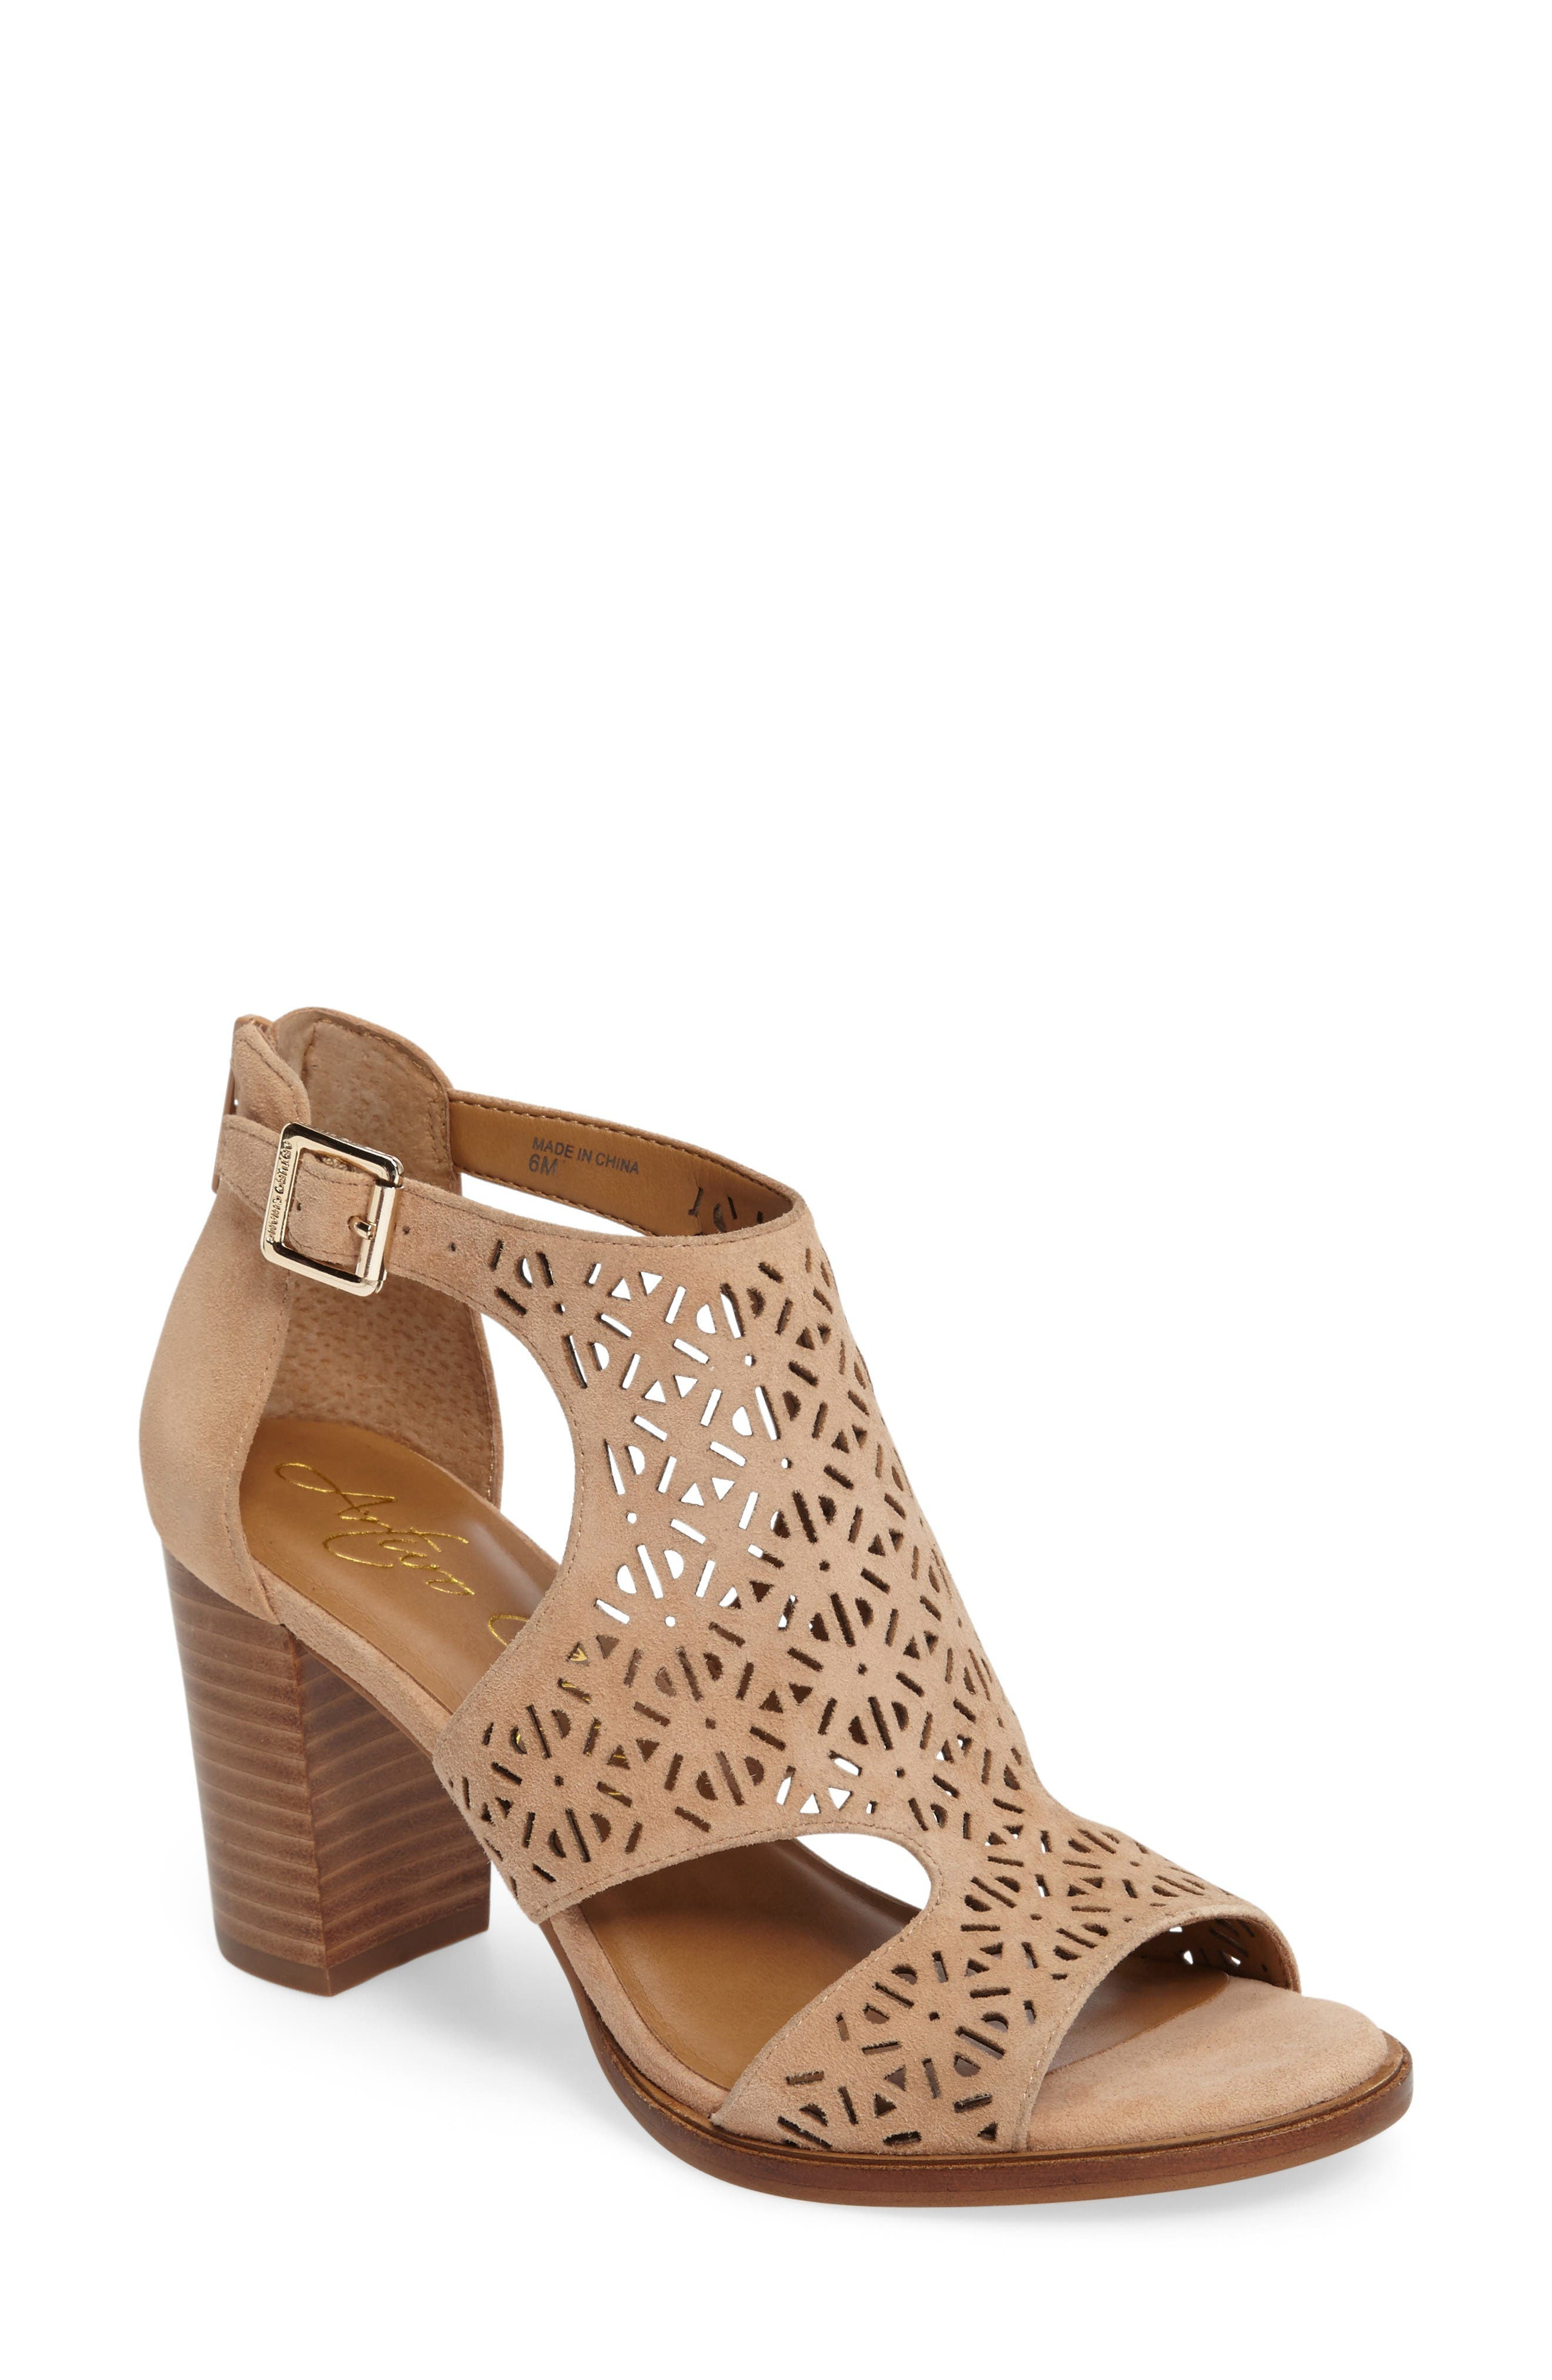 Alternate Image 1 Selected - Arturo Chiang Edythe Block Heel Sandal (Women)